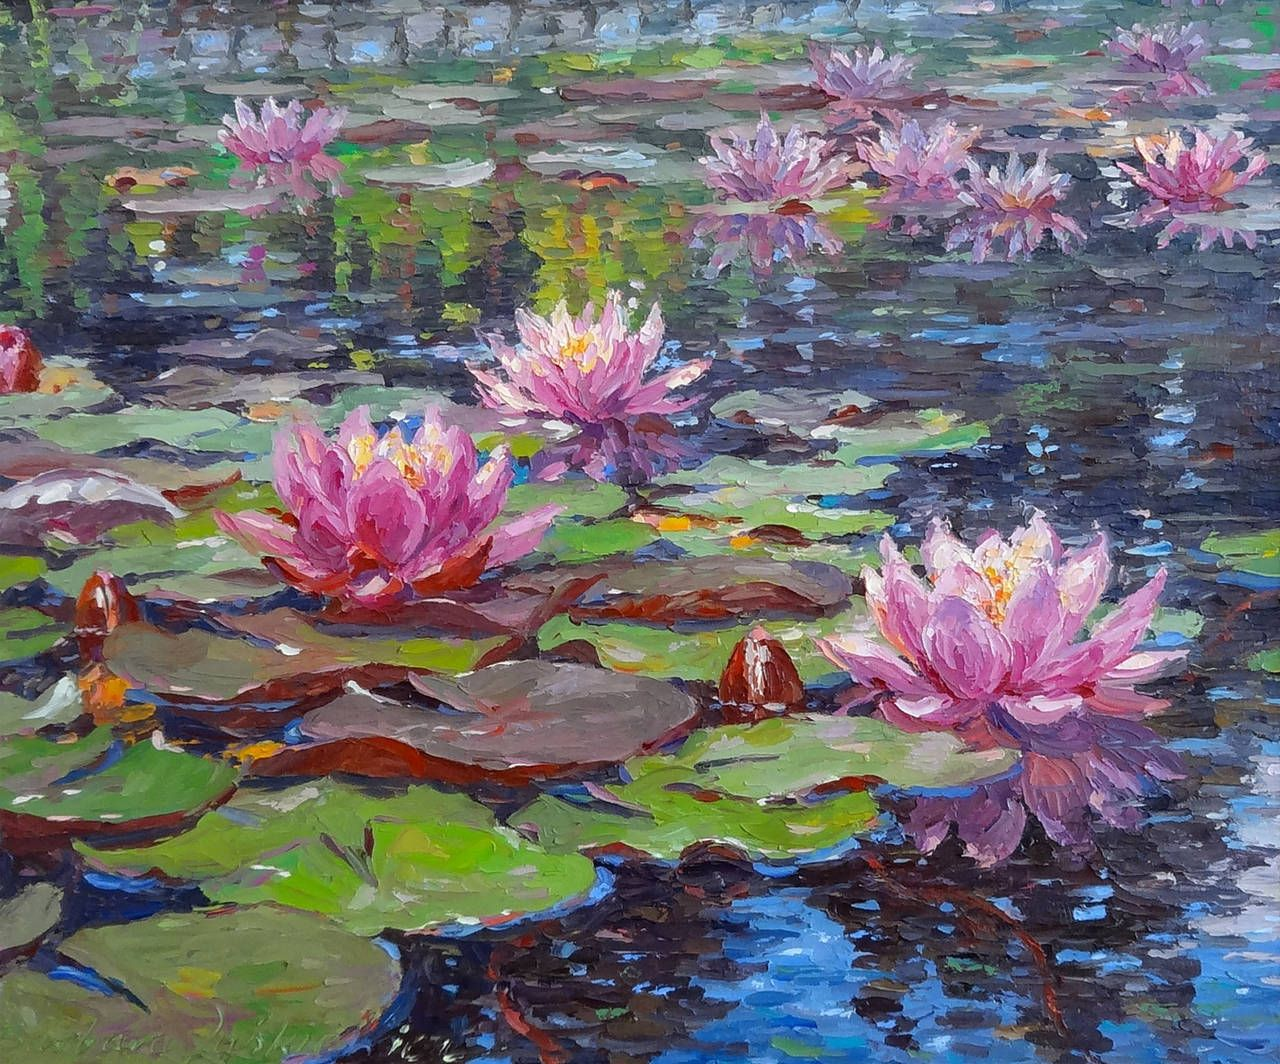 Water lilies water lilies landscaping and paintings barbara jaskiewicz water lilies izmirmasajfo